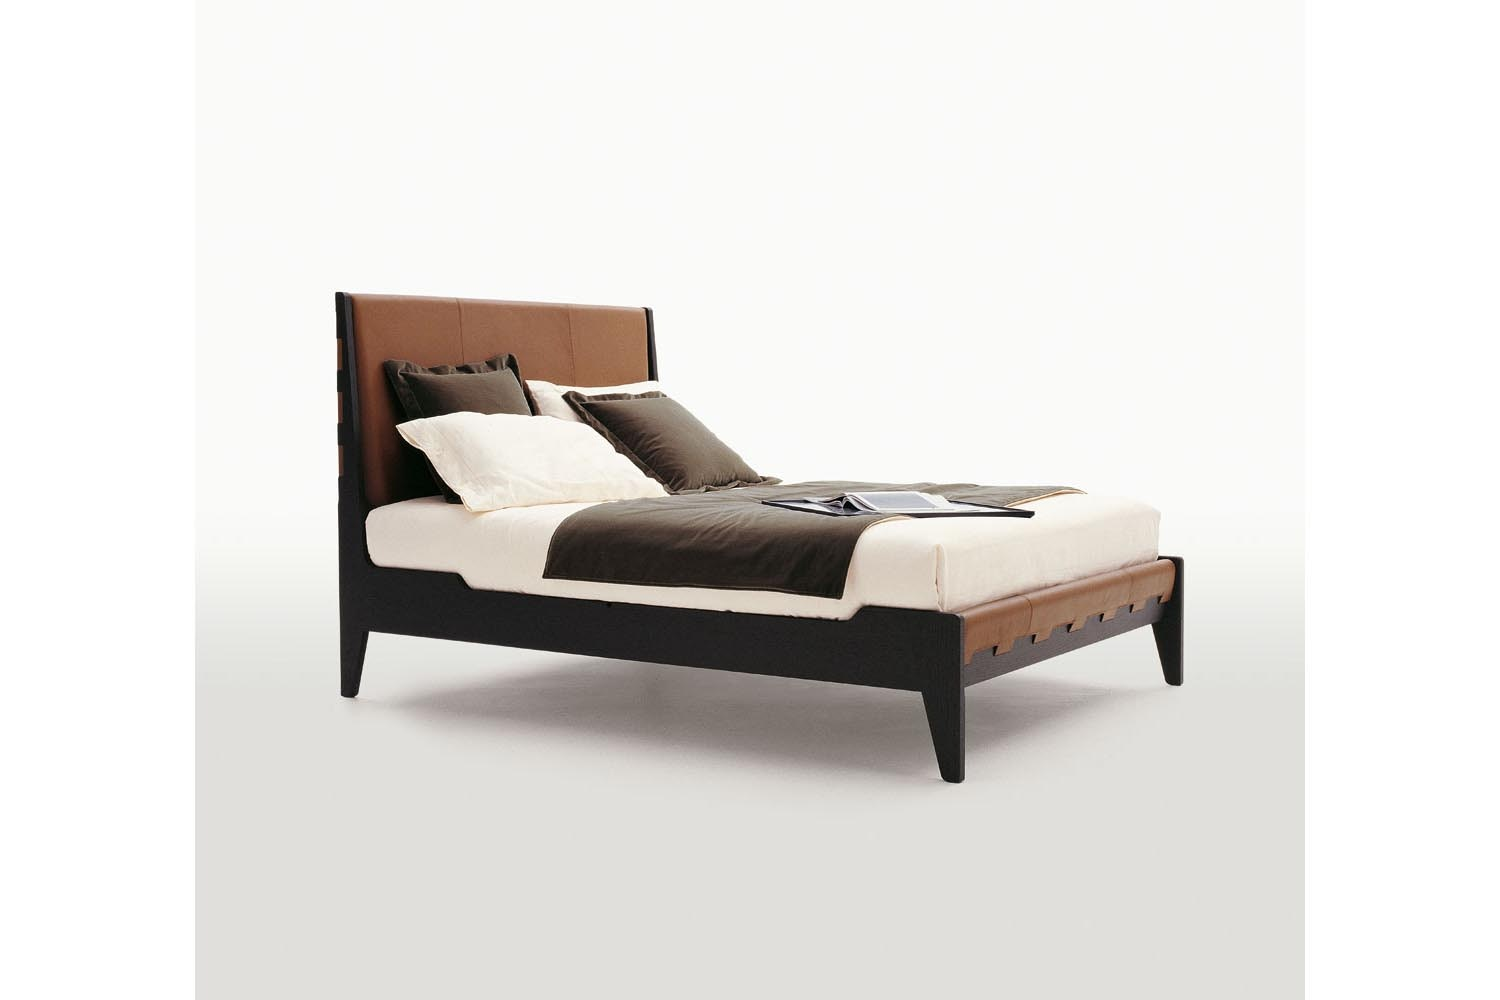 Talamo Bed by Antonio Citterio for Maxalto